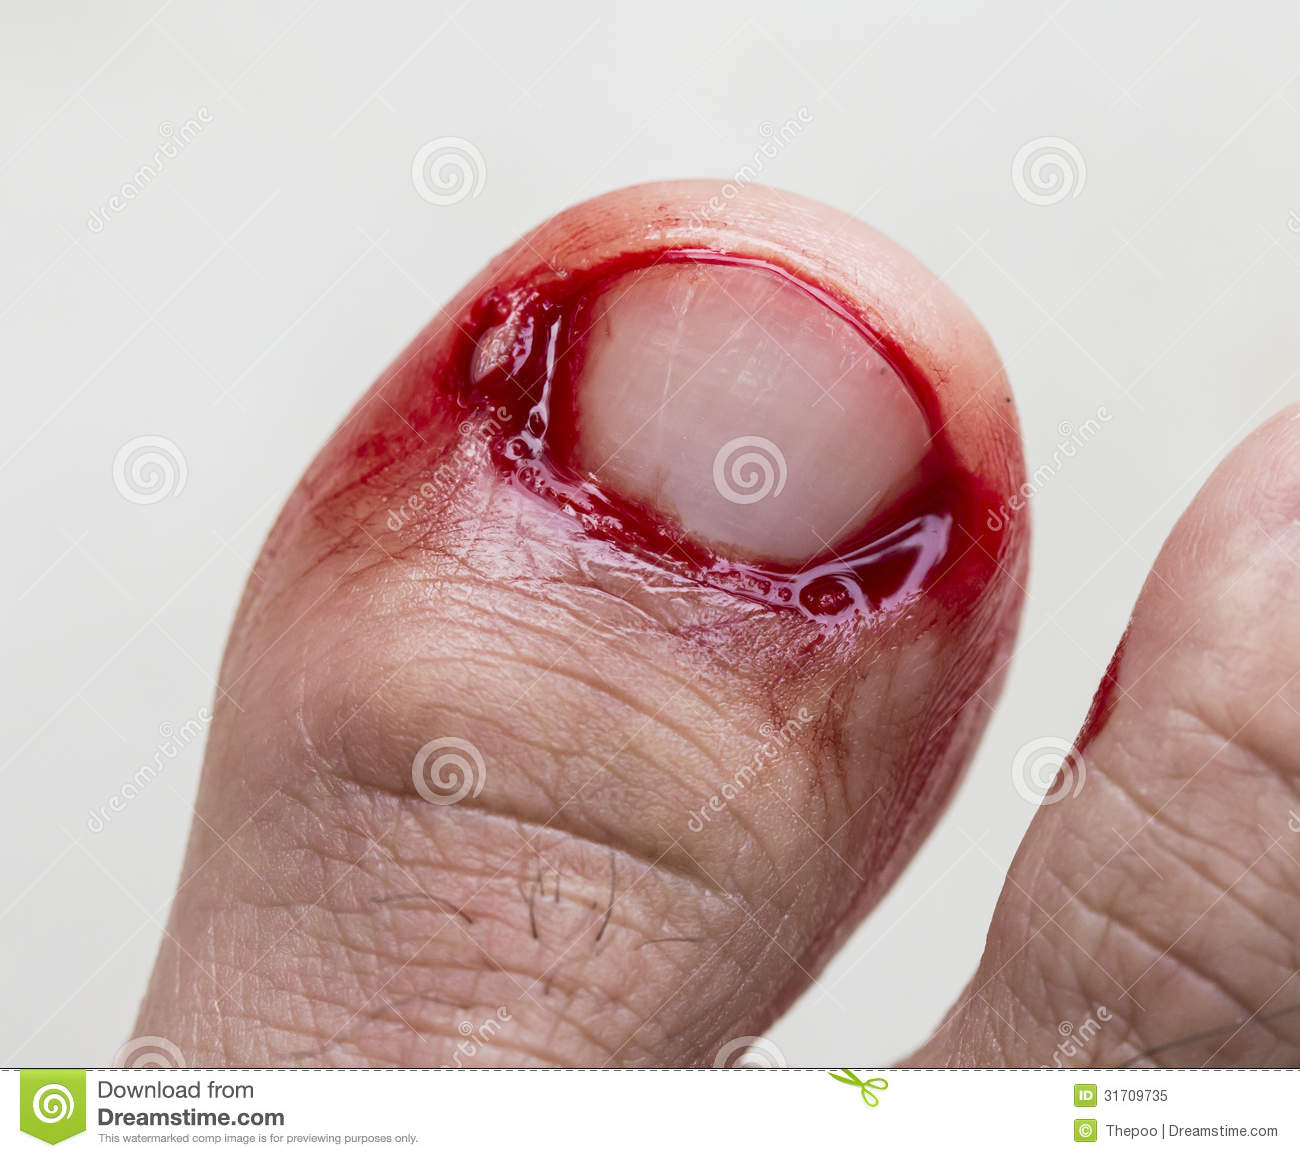 Man sucks bleeding toe for $100 (viewer discretion) - YouTube